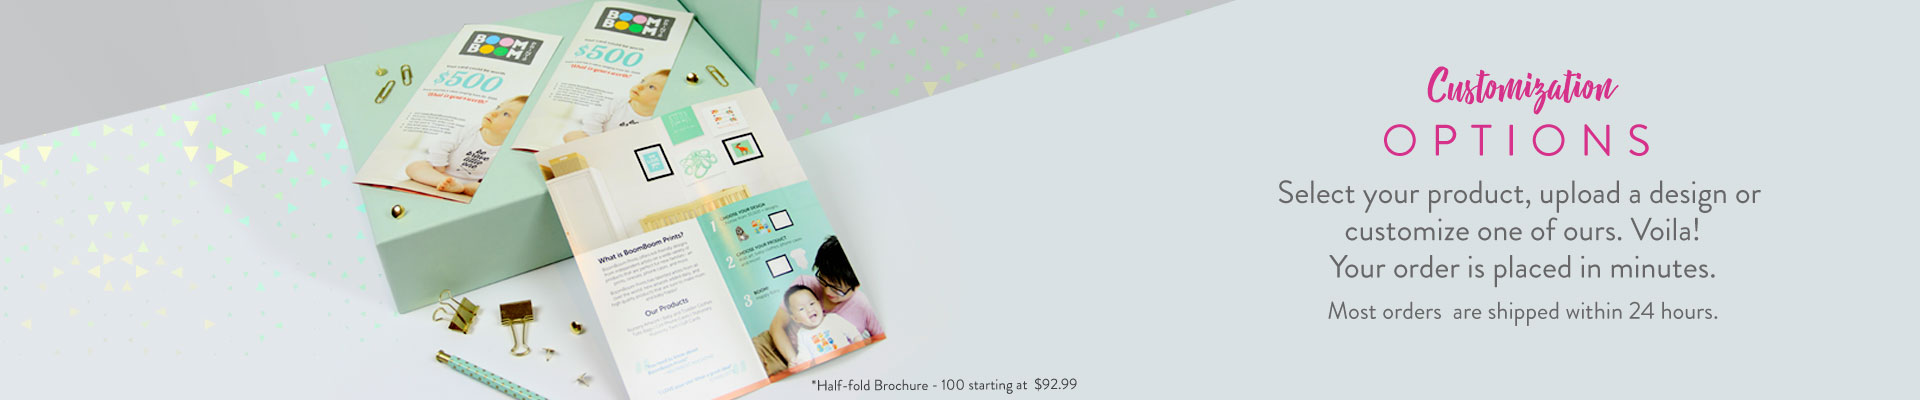 Customize Options Banner